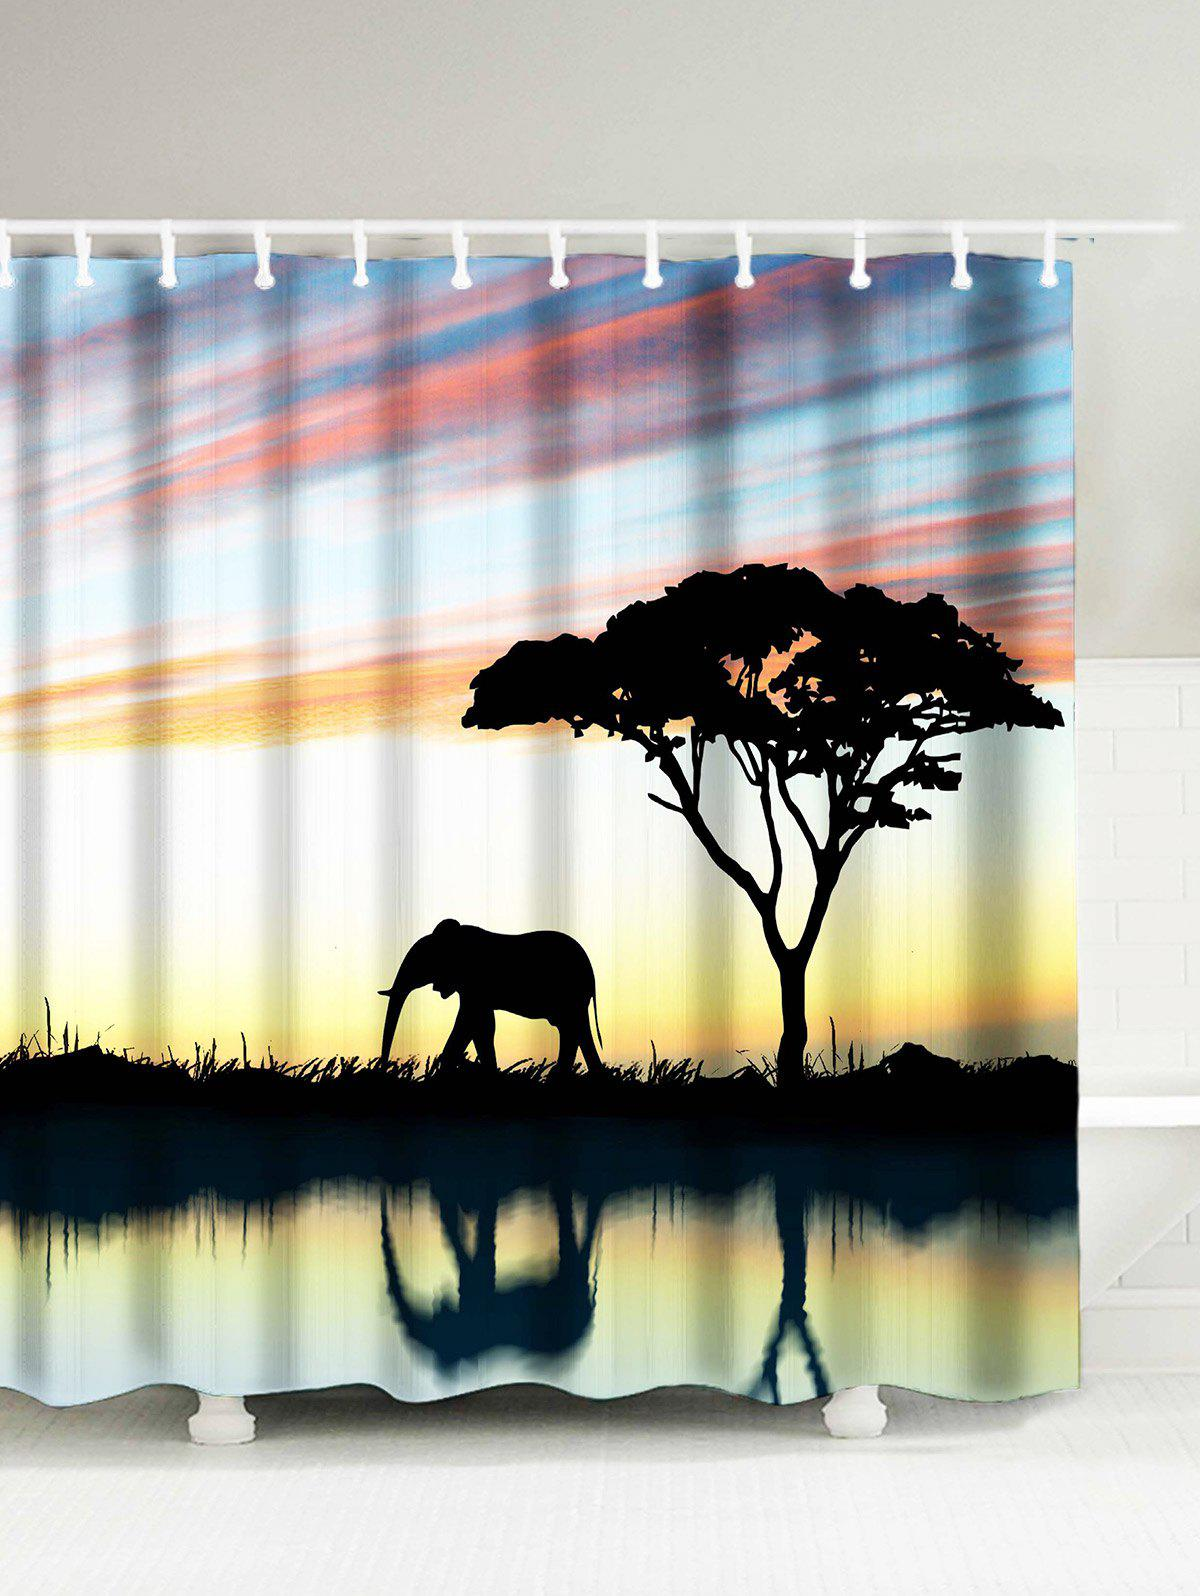 Afro Landscape Elephant Water Resistant Shower Curtain nforba melvin tamnta and cheo emmanuel suh regolith geochemistry and mineralogy derived from itabirite